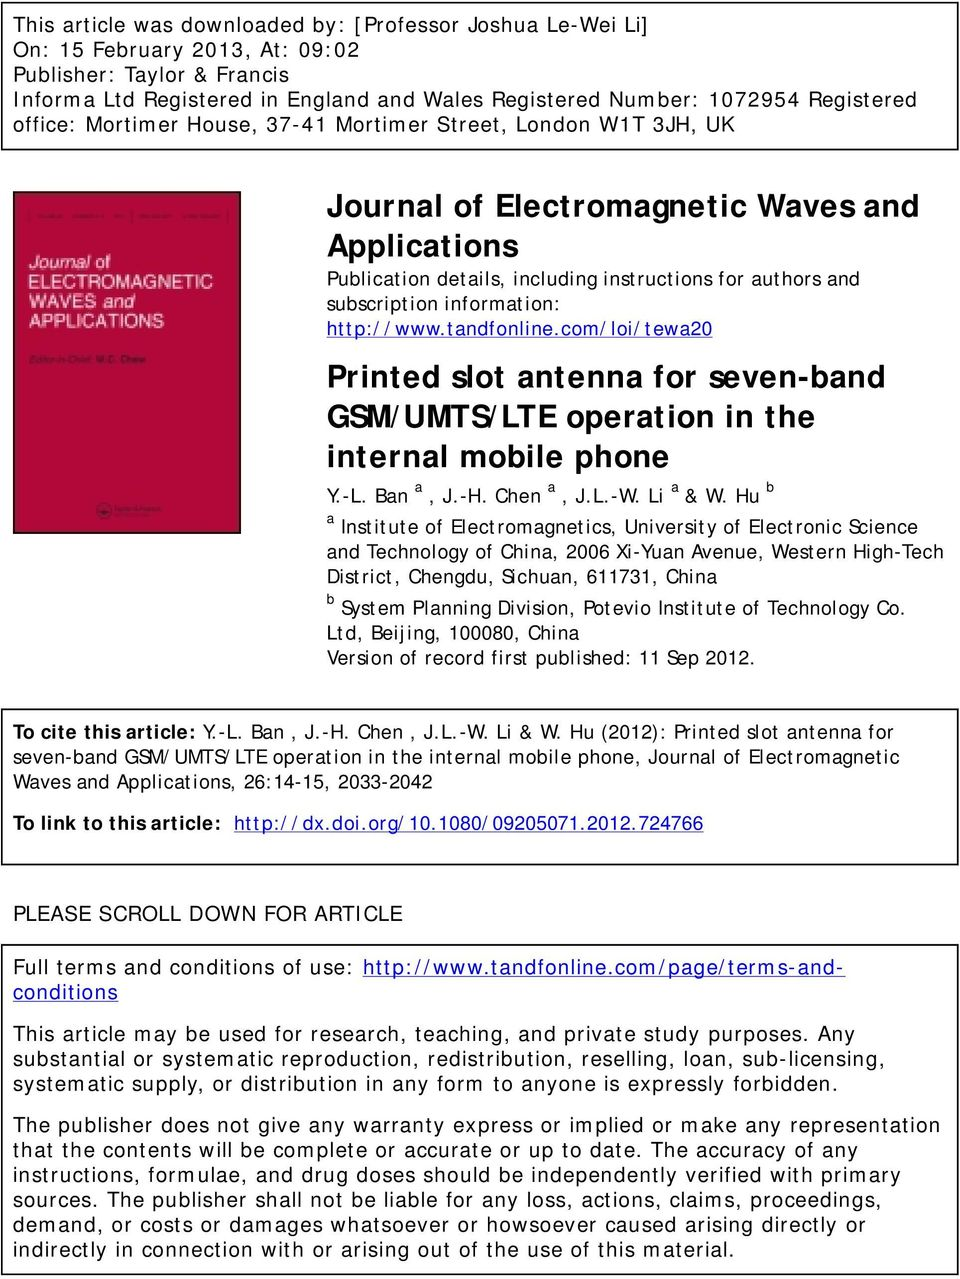 information: http://www.tandfonline.com/loi/tewa20 Printed slot antenna for seven-band GSM/UMTS/LTE operation in the internal mobile phone Y.-L. Ban a, J.-H. Chen a, J.L.-W. Li a & W.